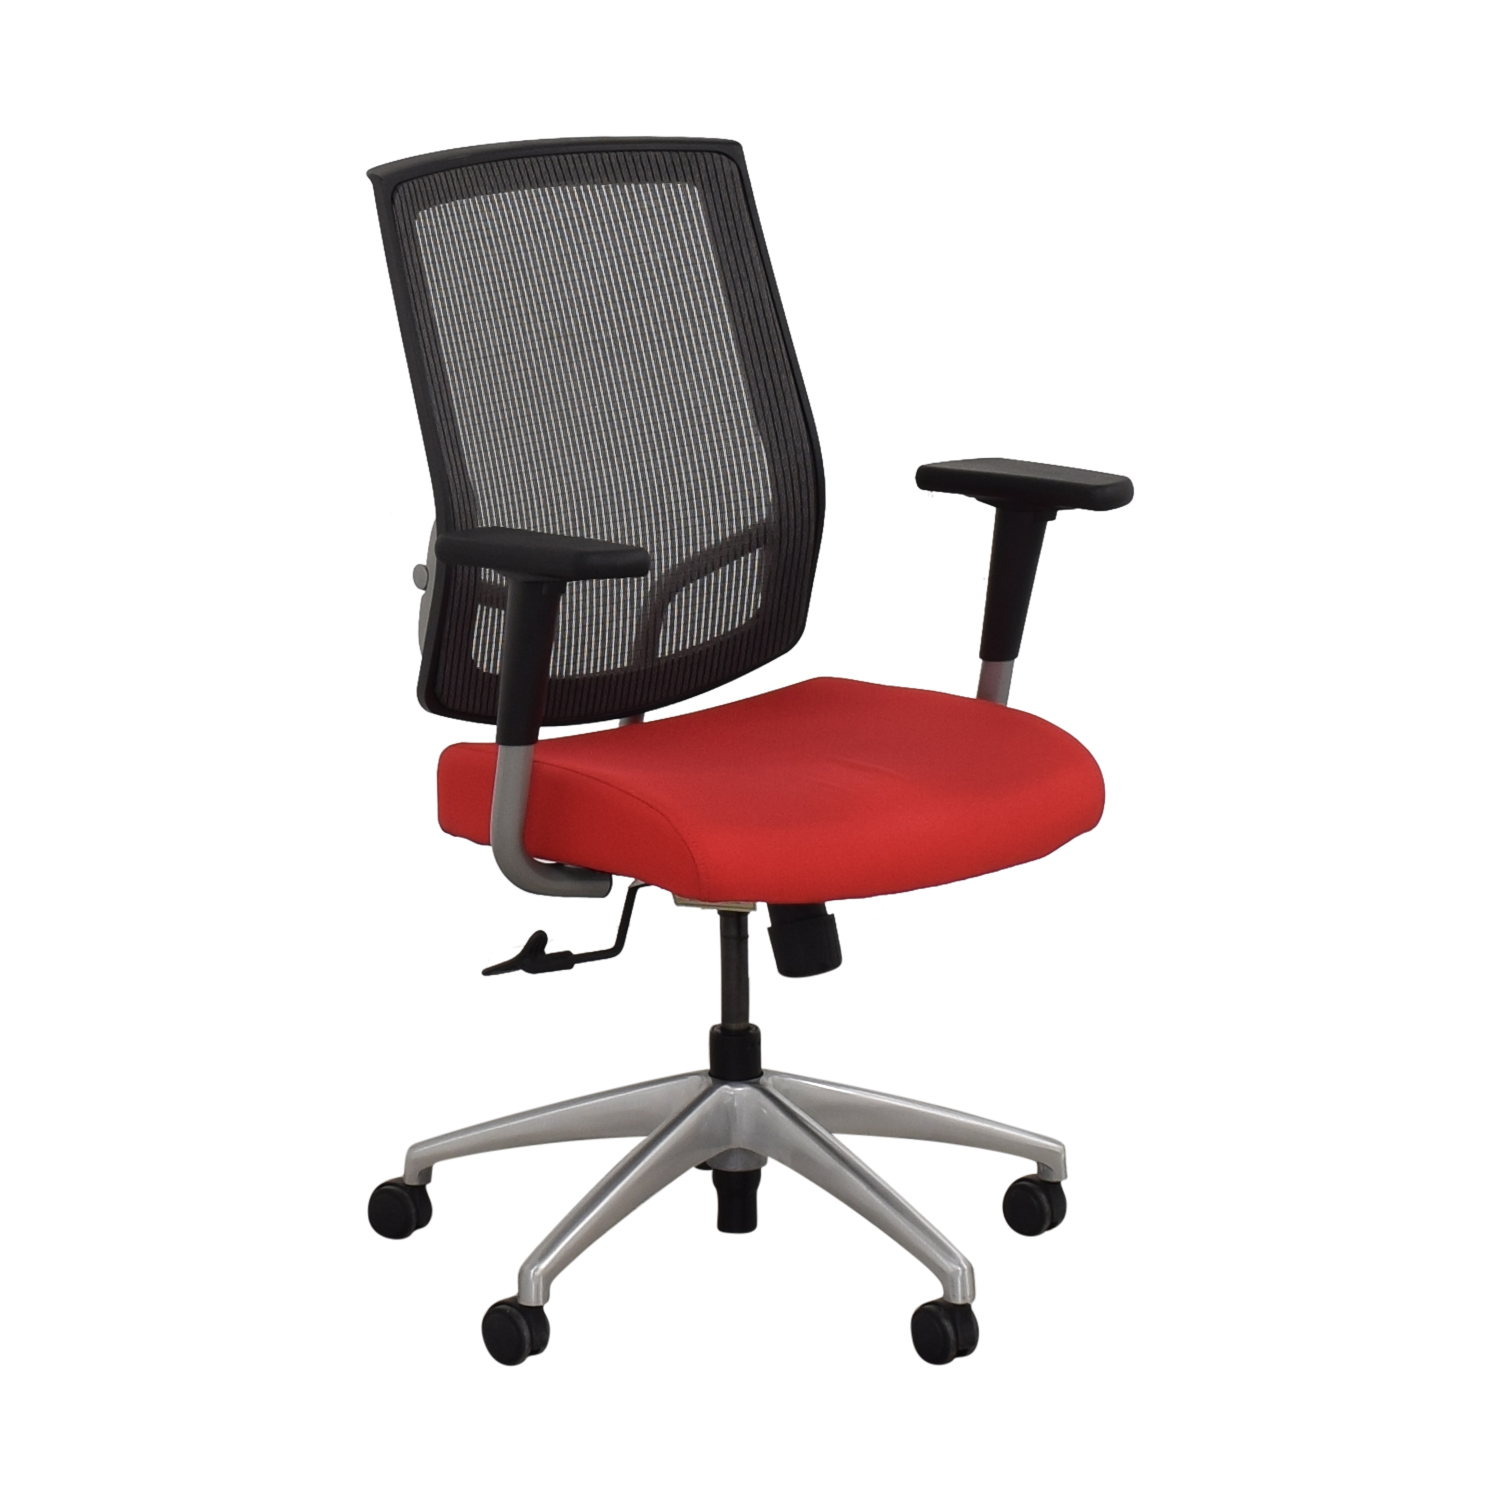 SitOnIt SitOnIt Focus High Back Office Chair nyc